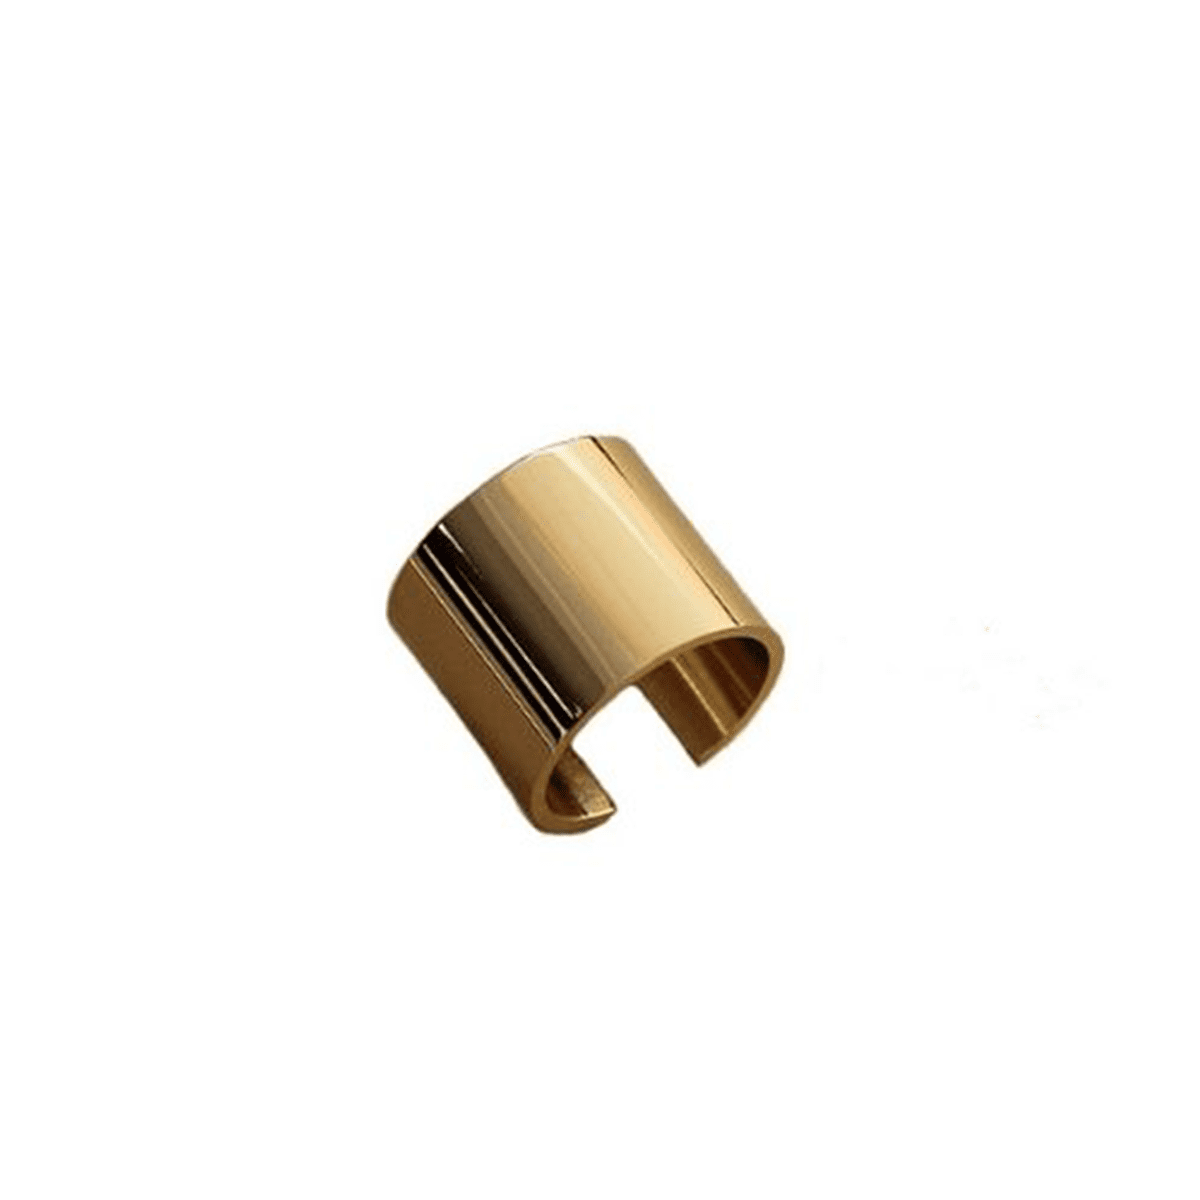 Minimally-Edgy 18k Gold-Plated Ring